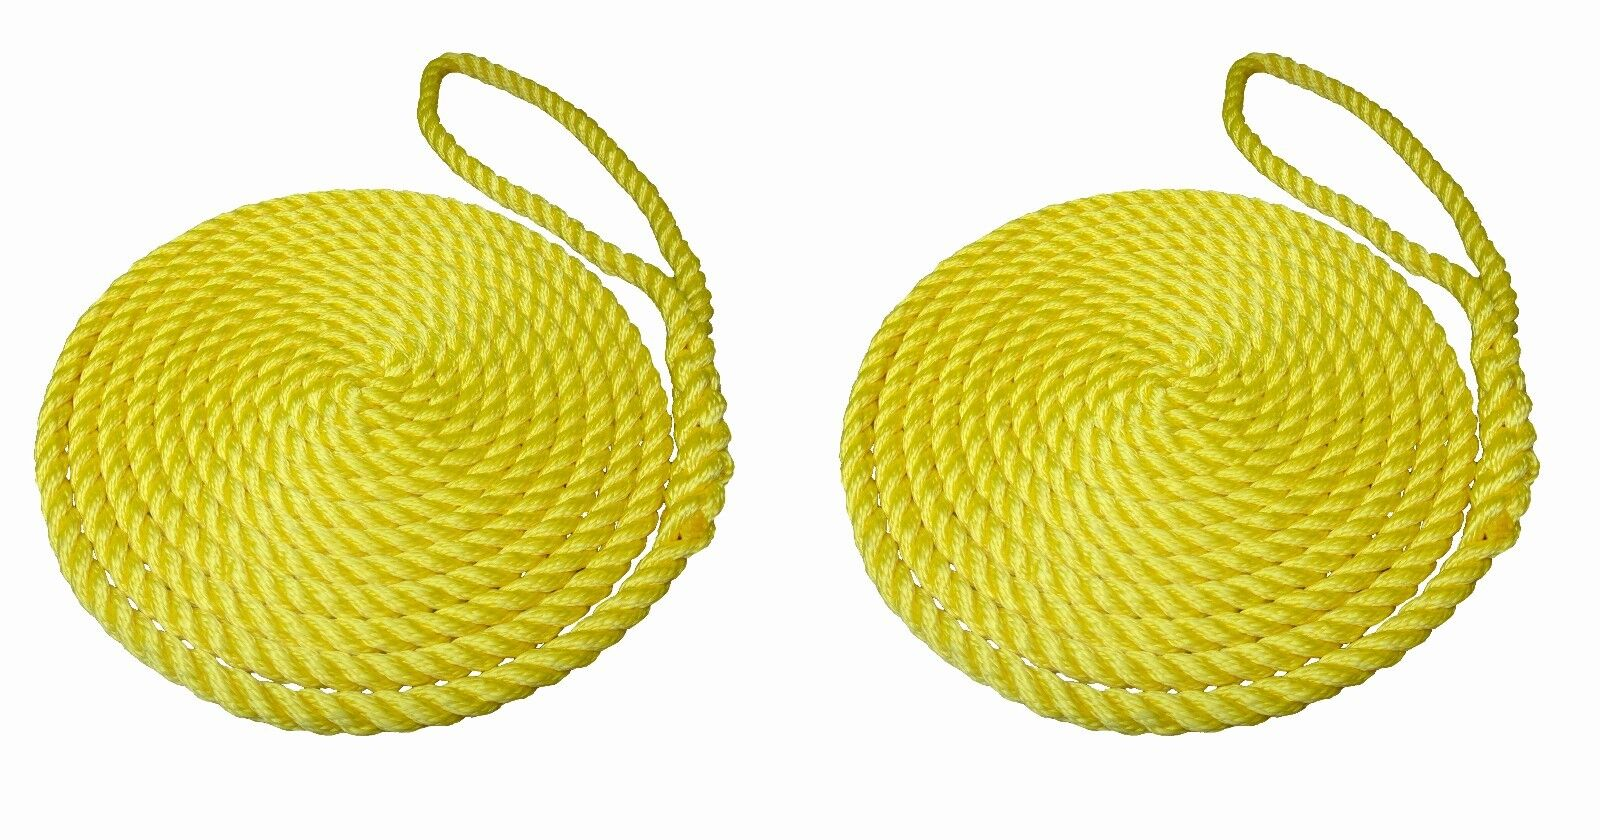 2 x 15 MTS OF 12MM YELLOW SOFTLINE MOORING ROPES   WARPS   LINES BOATS